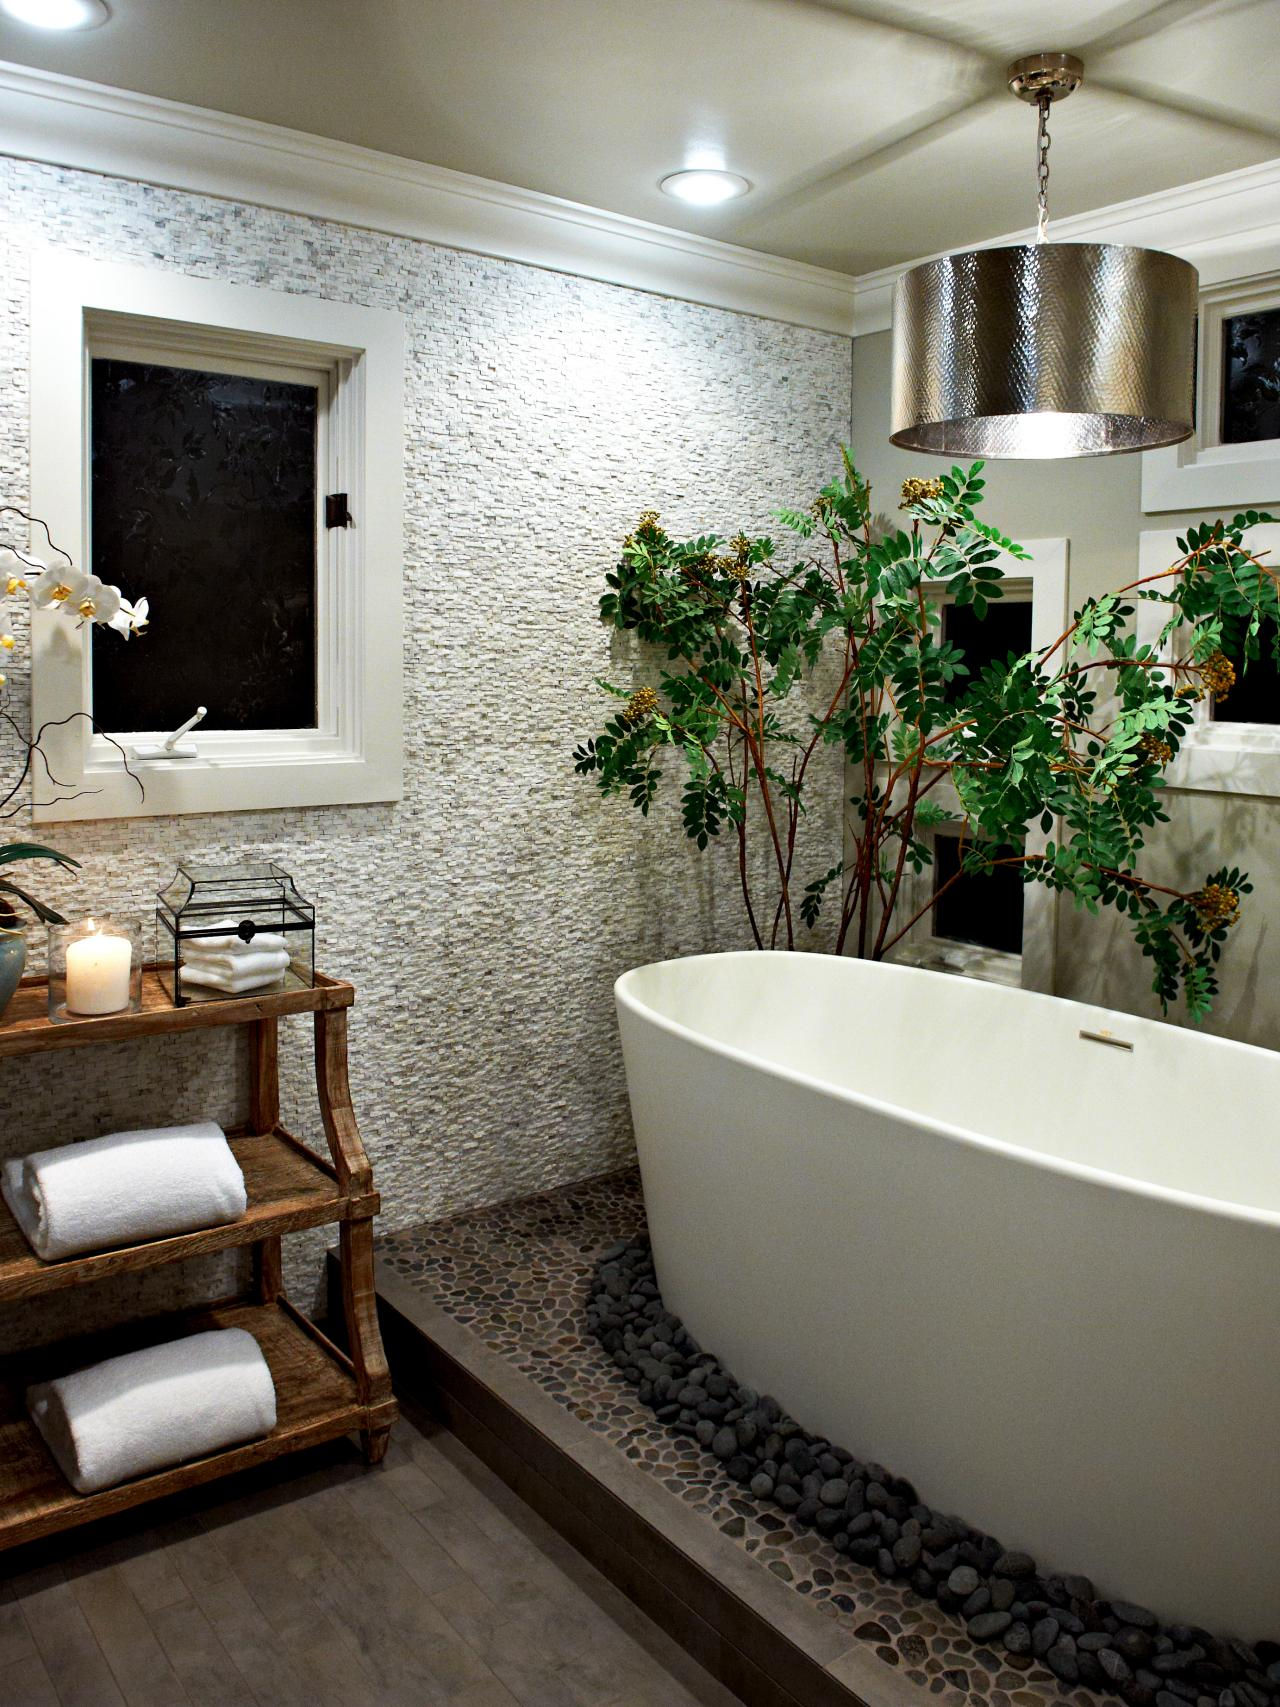 Modern Bathtub Designs Pictures Ideas Amp Tips From Hgtv